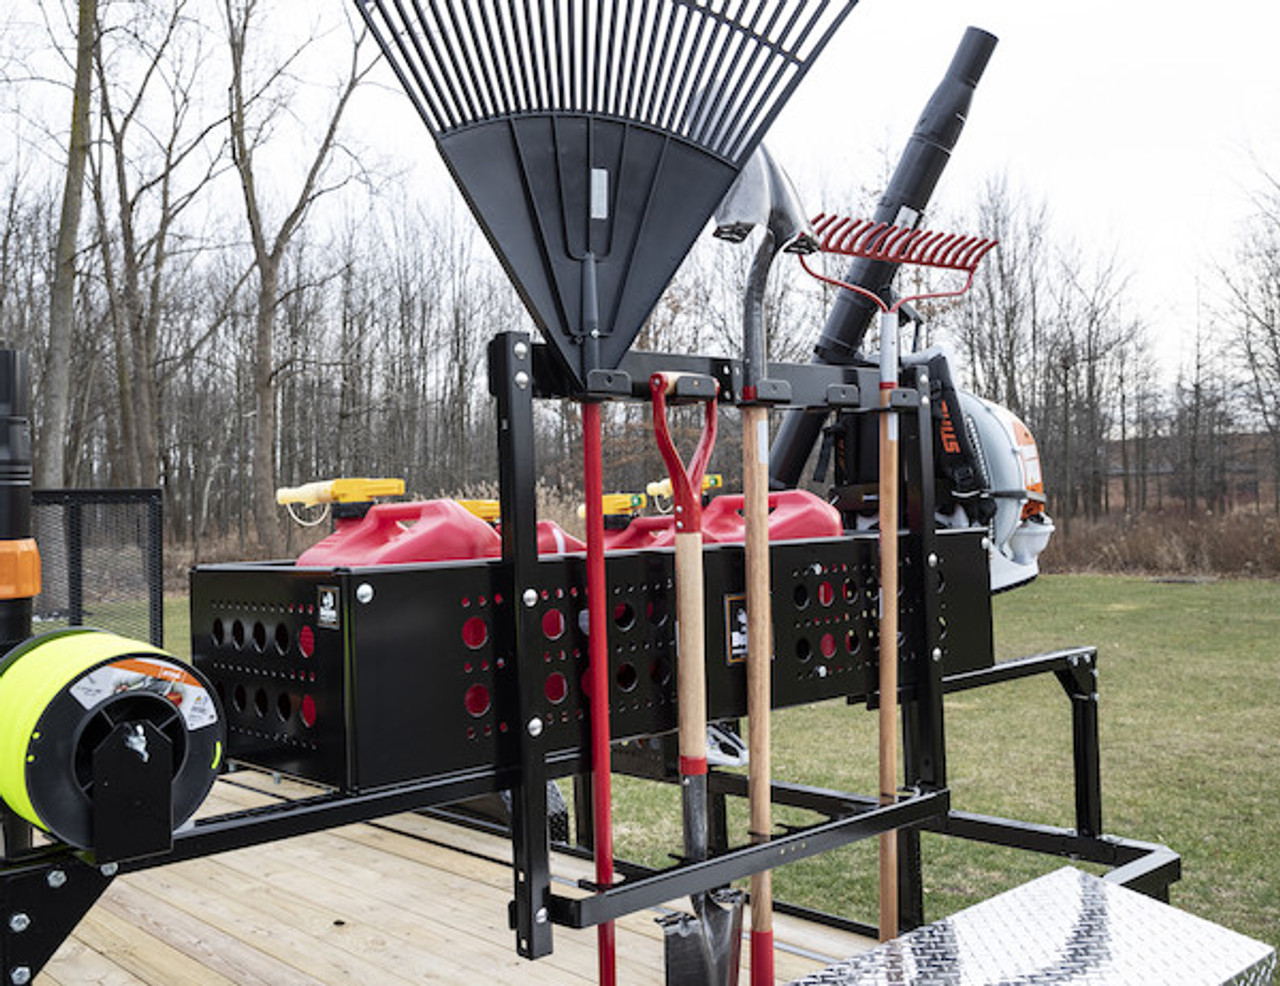 Buyers LT46 5 Position Vertical Hand Tool Rack For Open Landscape Trailers Picture # 3